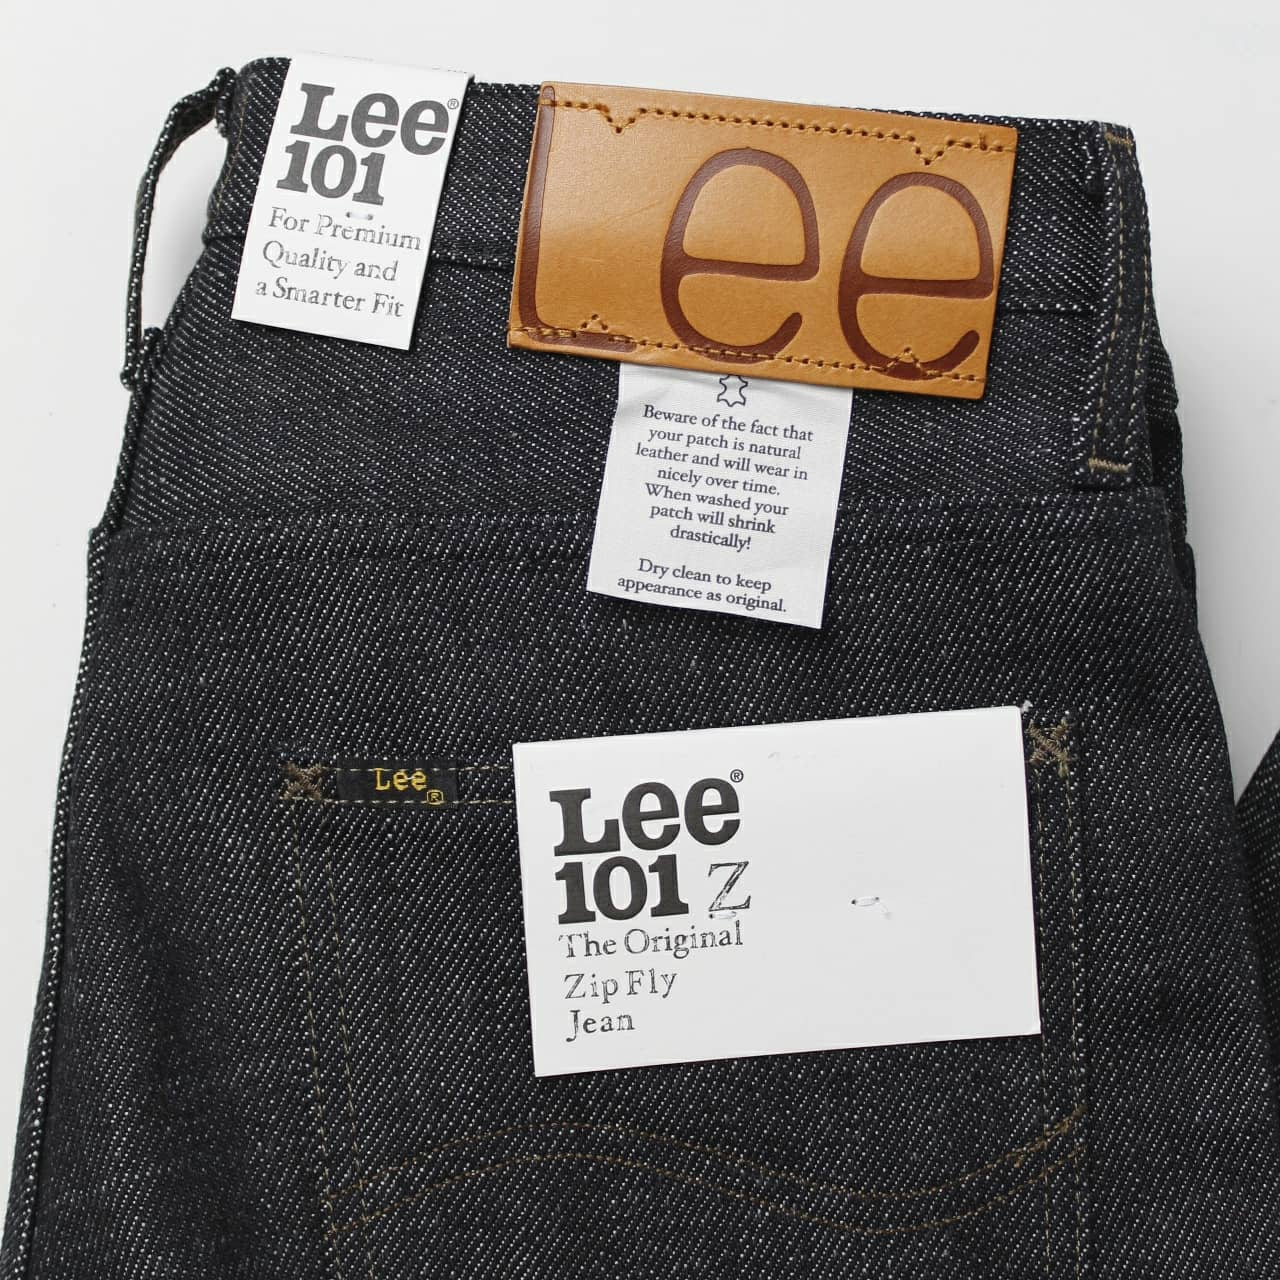 LEE 101 - MEN´S 101 Z RELAXED FIT HEAVYWEIGHT JEANS IN DRY - 21oz